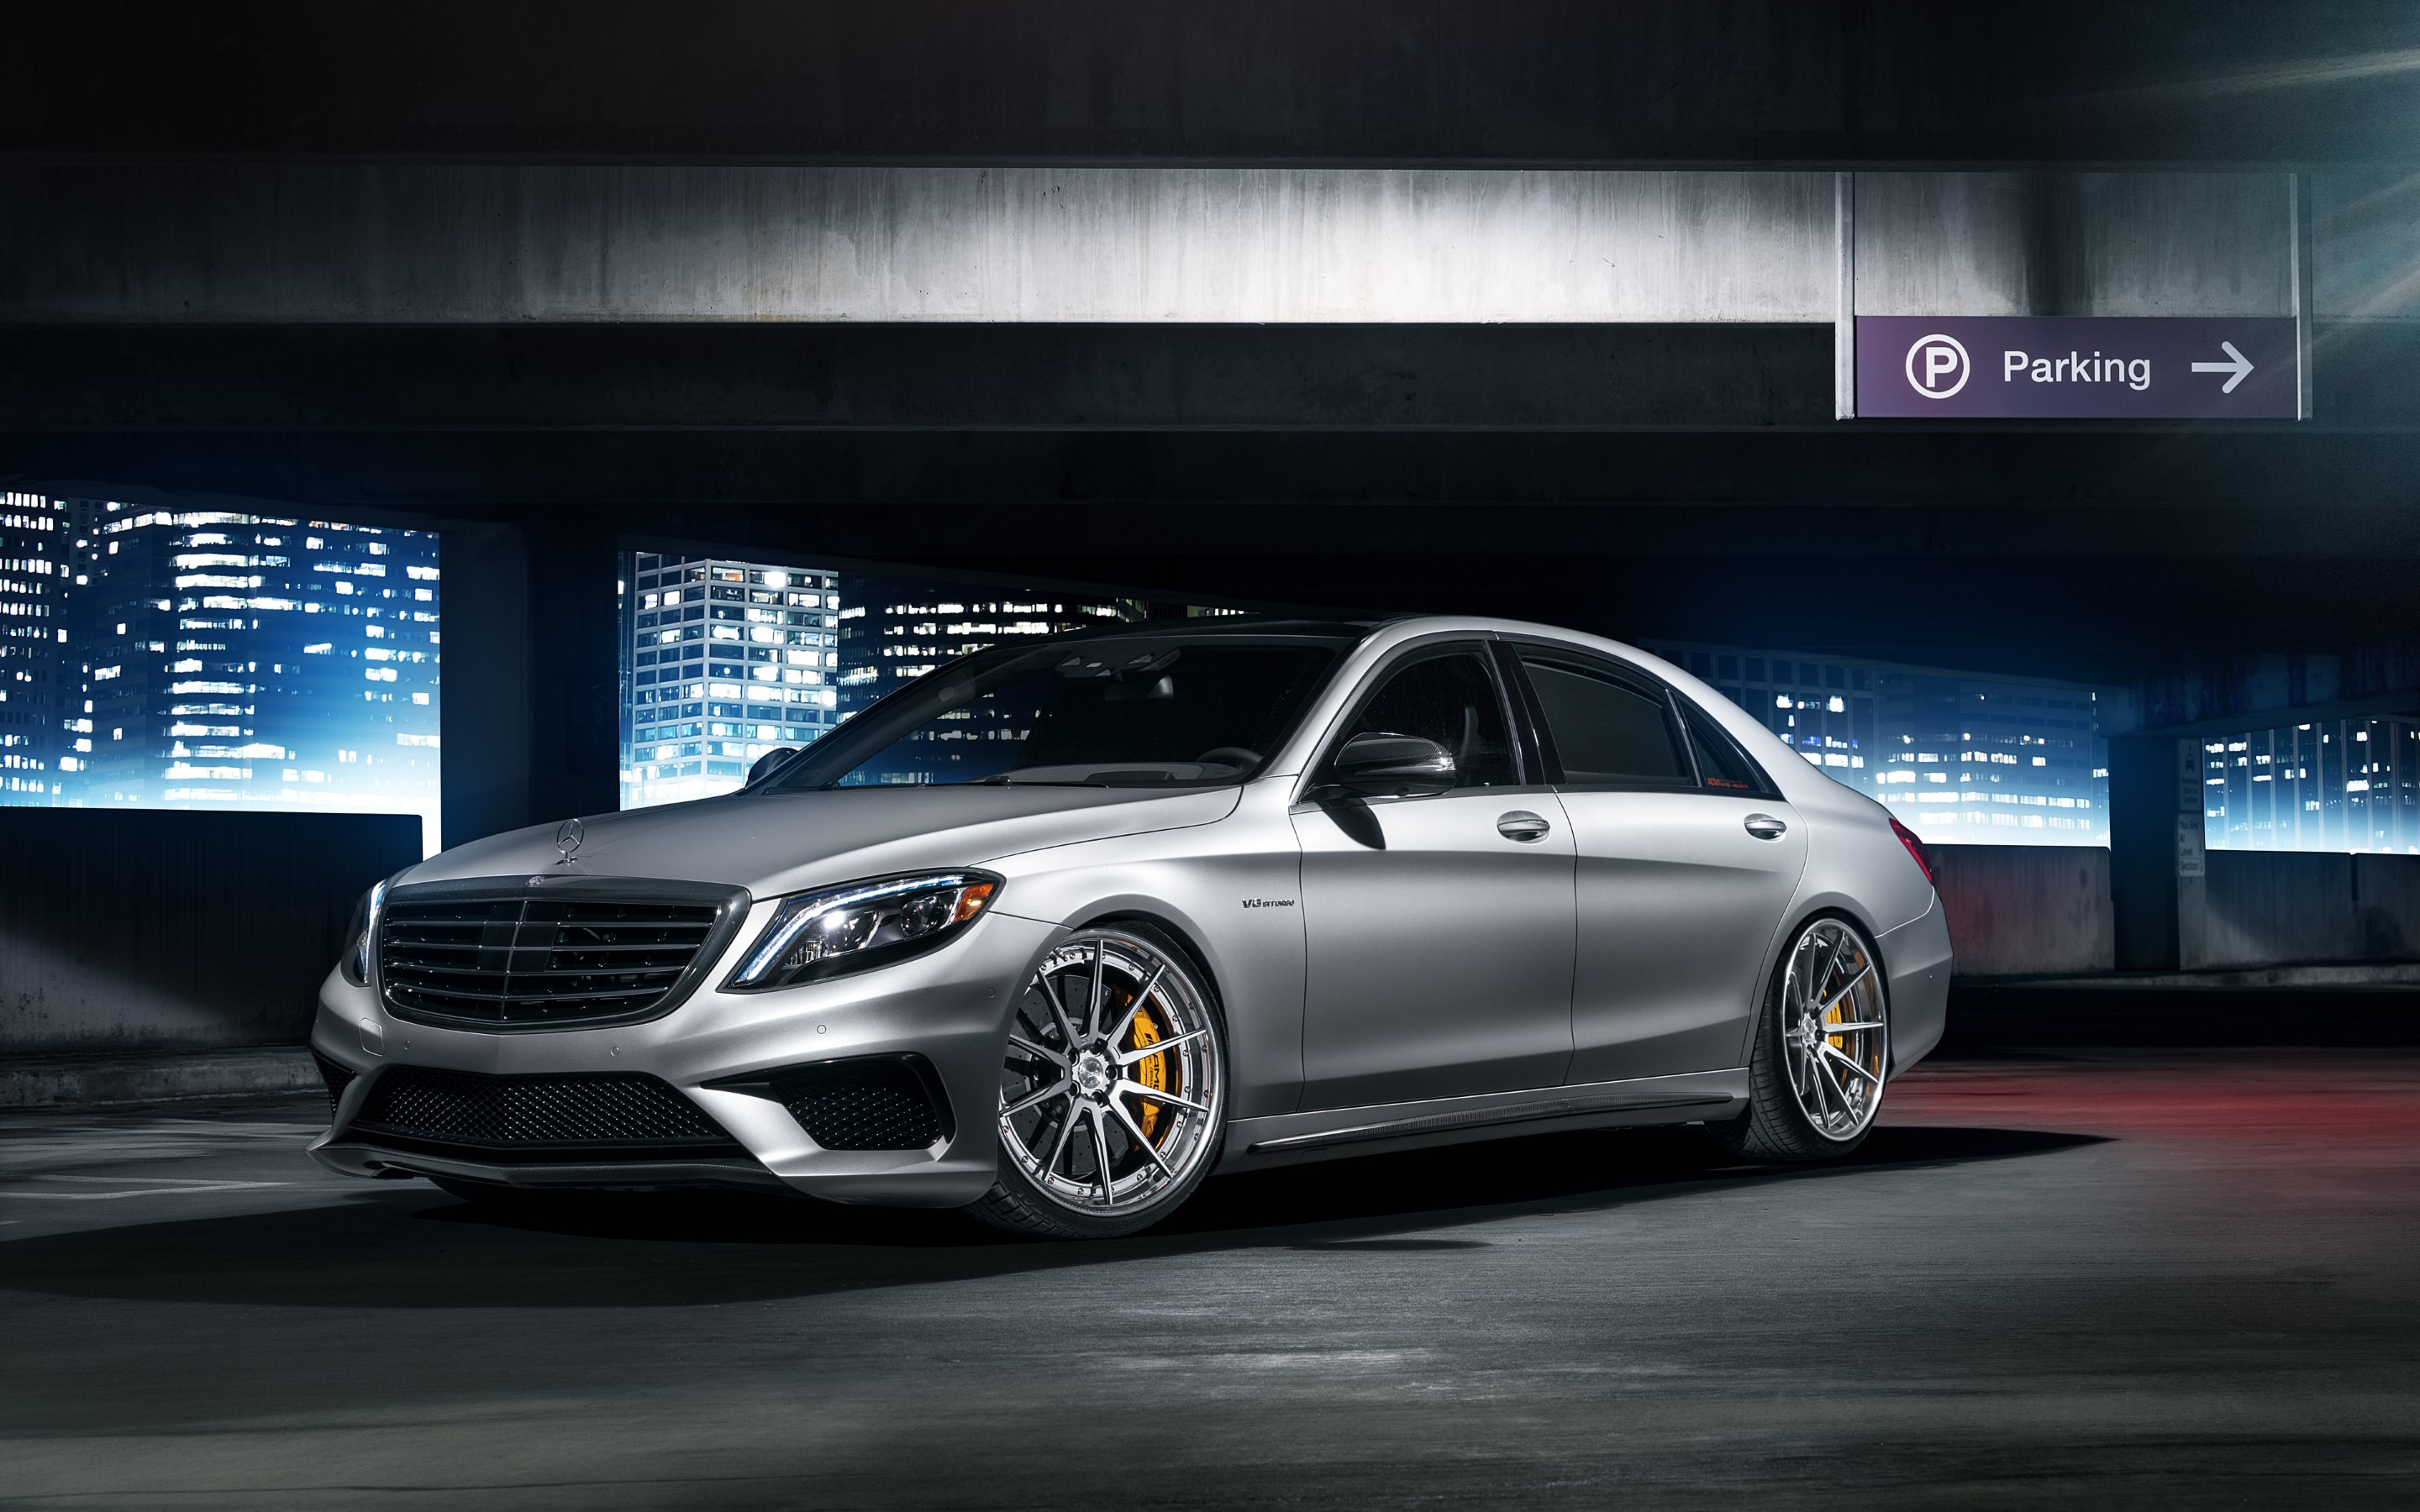 mercedes amg s63 with adv wheels hd wallpapers 4k